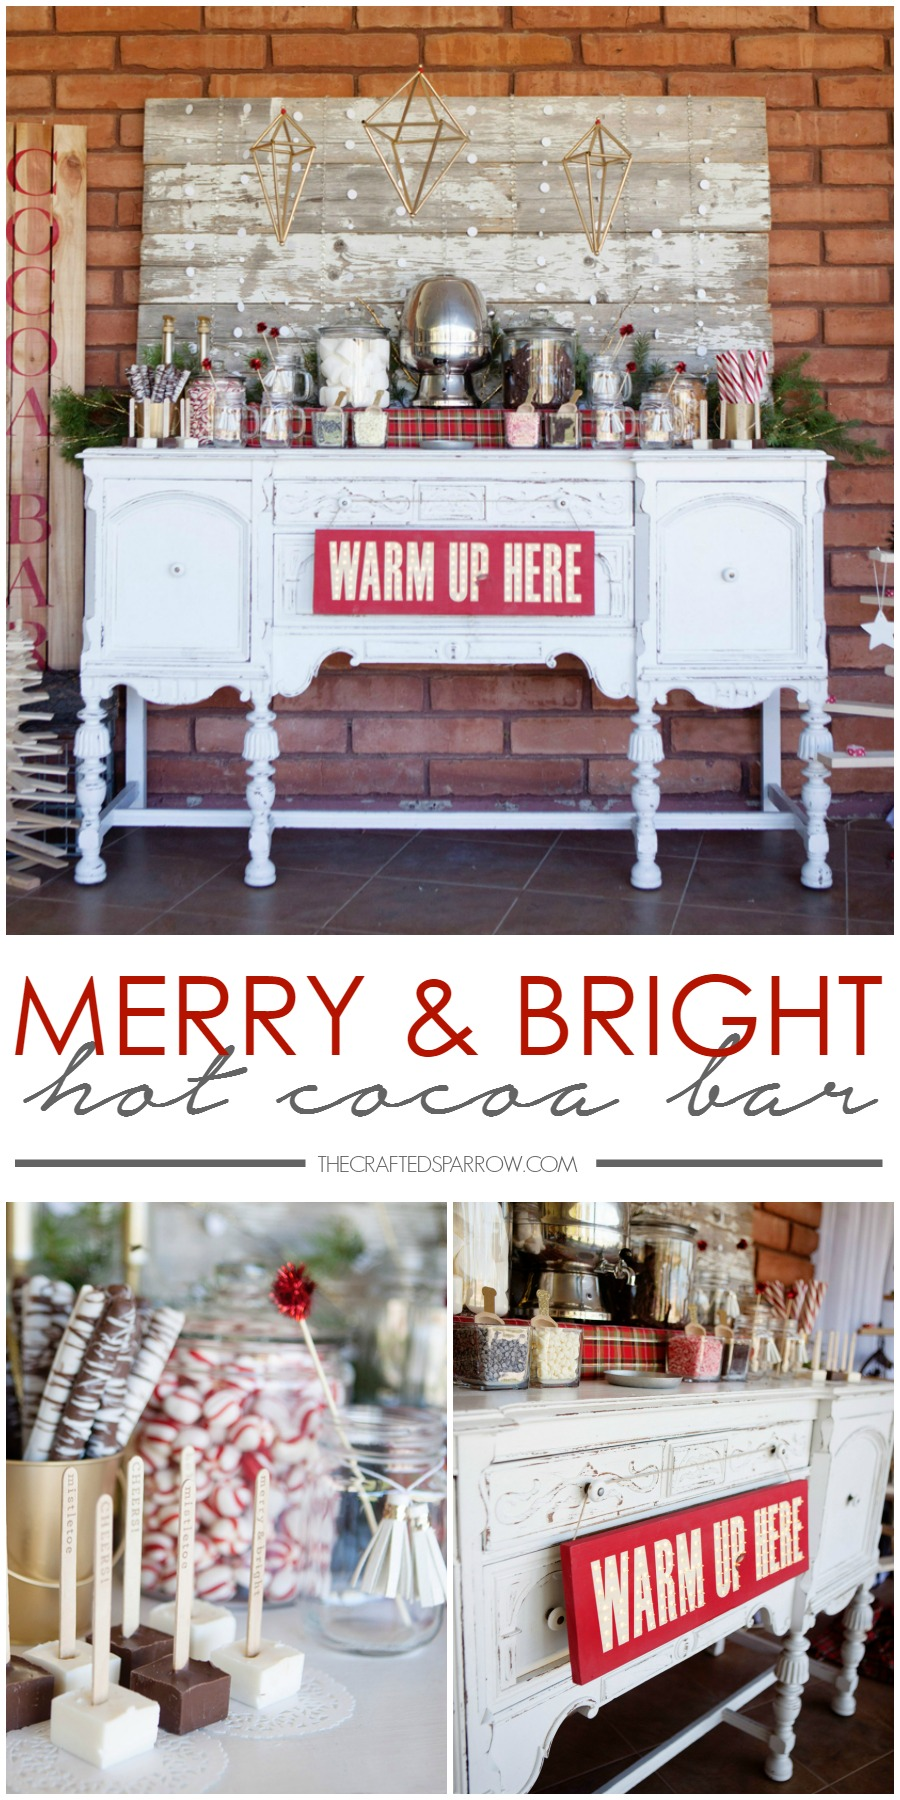 Merry & Bright Hot Cocoa Bar